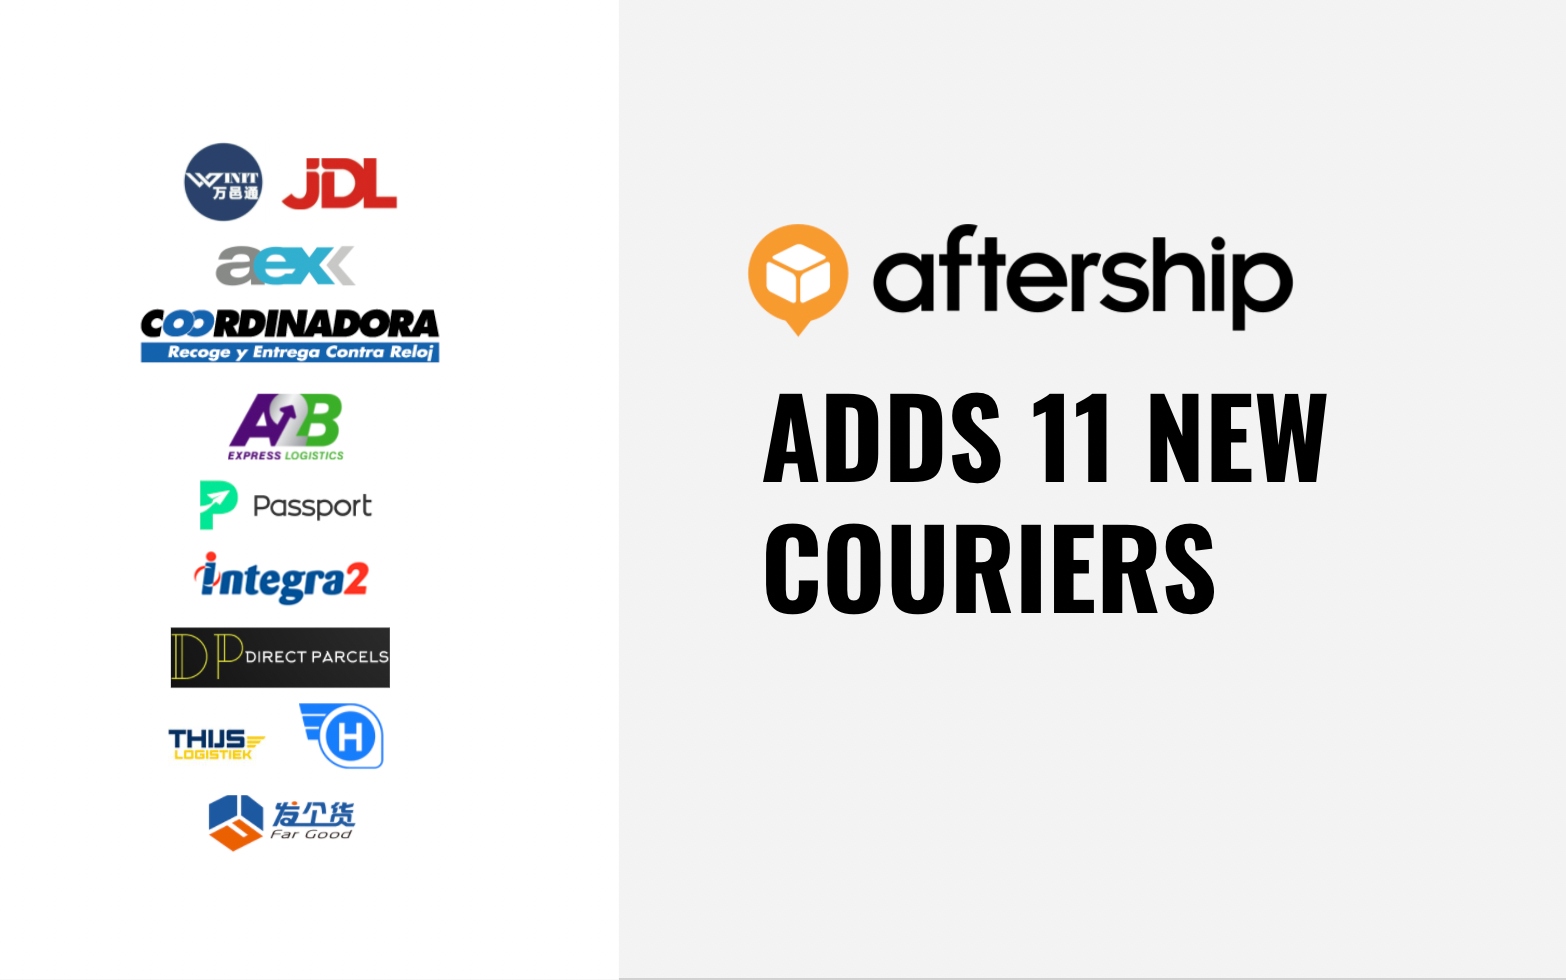 AfterShip adds 11 new couriers in last two weeks (31st May 2021 to 13th June 2021)